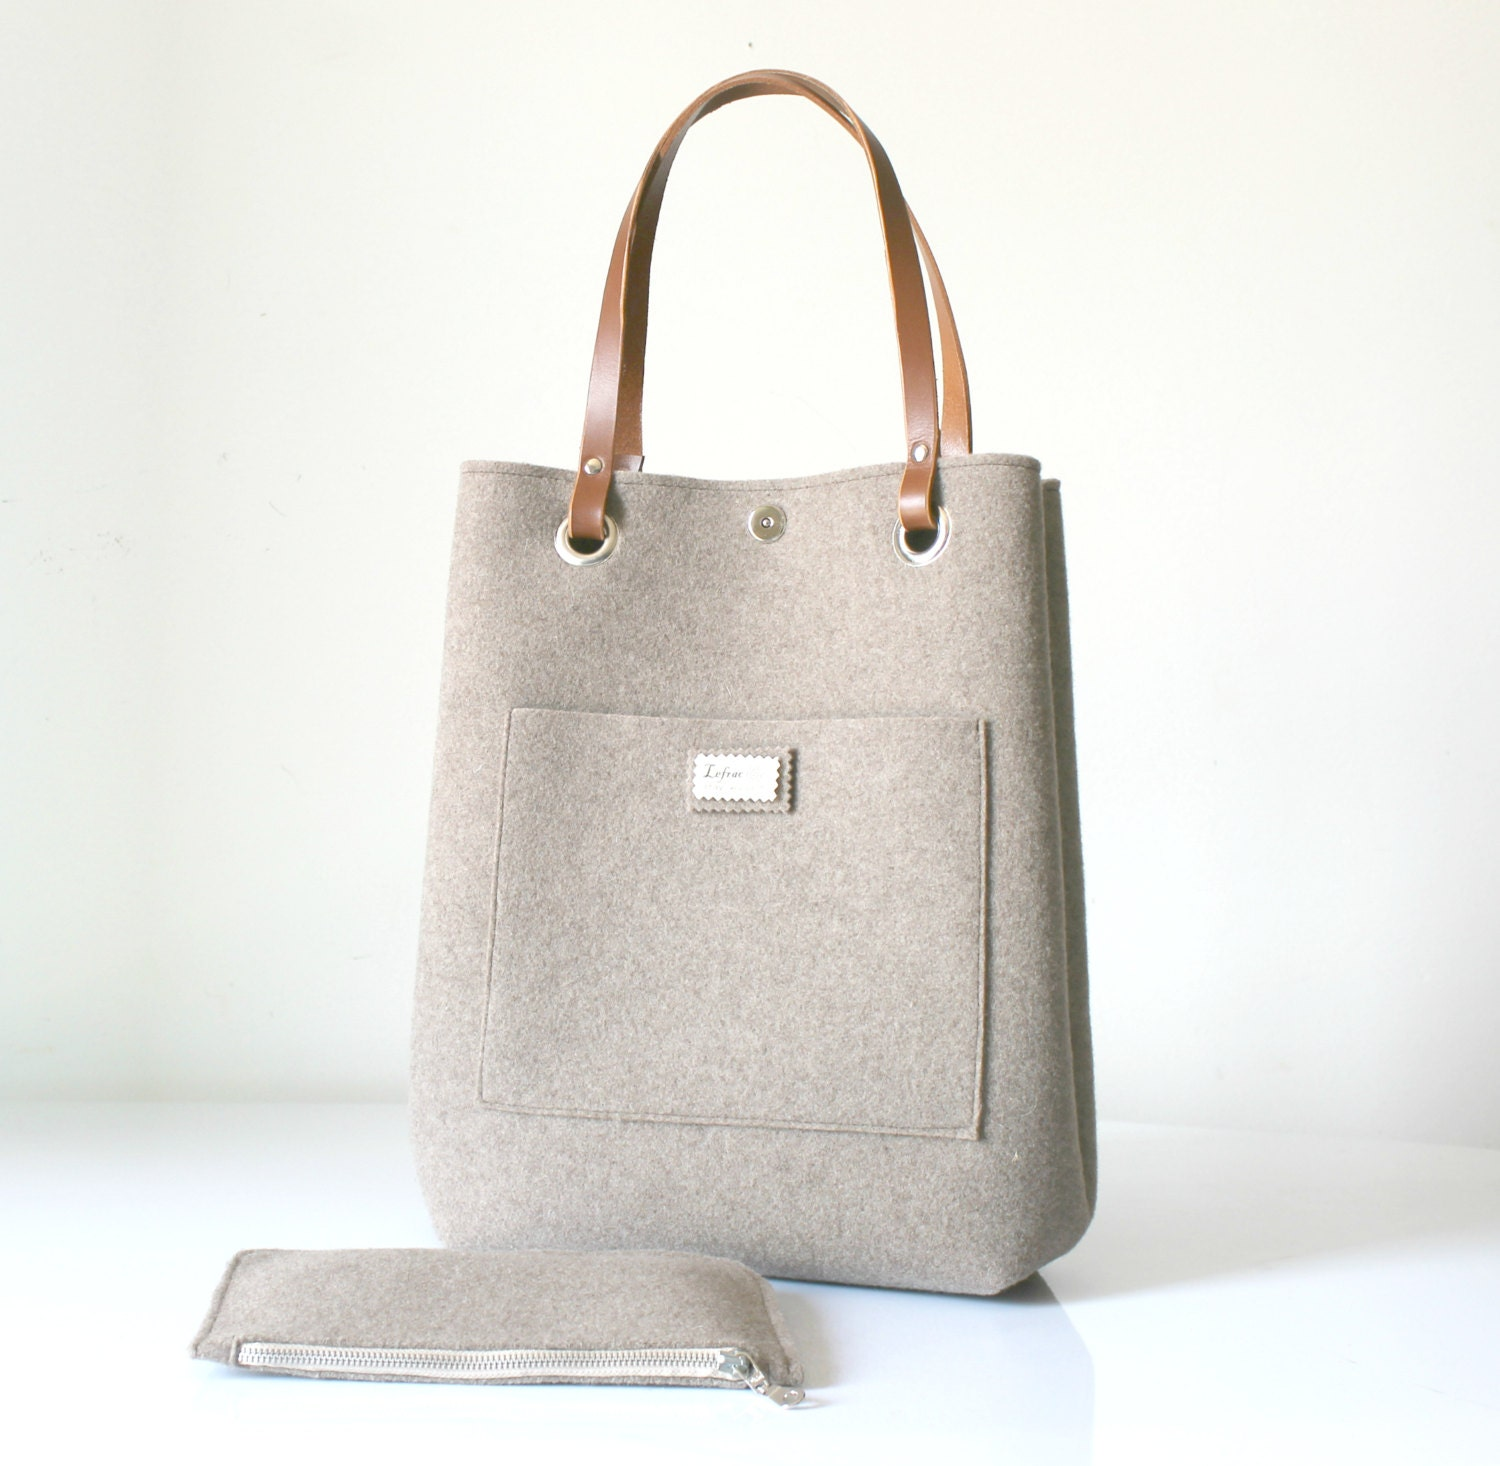 dc55cdf648c Leather Tote Large tote Everyday tote bag Casual tote   Etsy